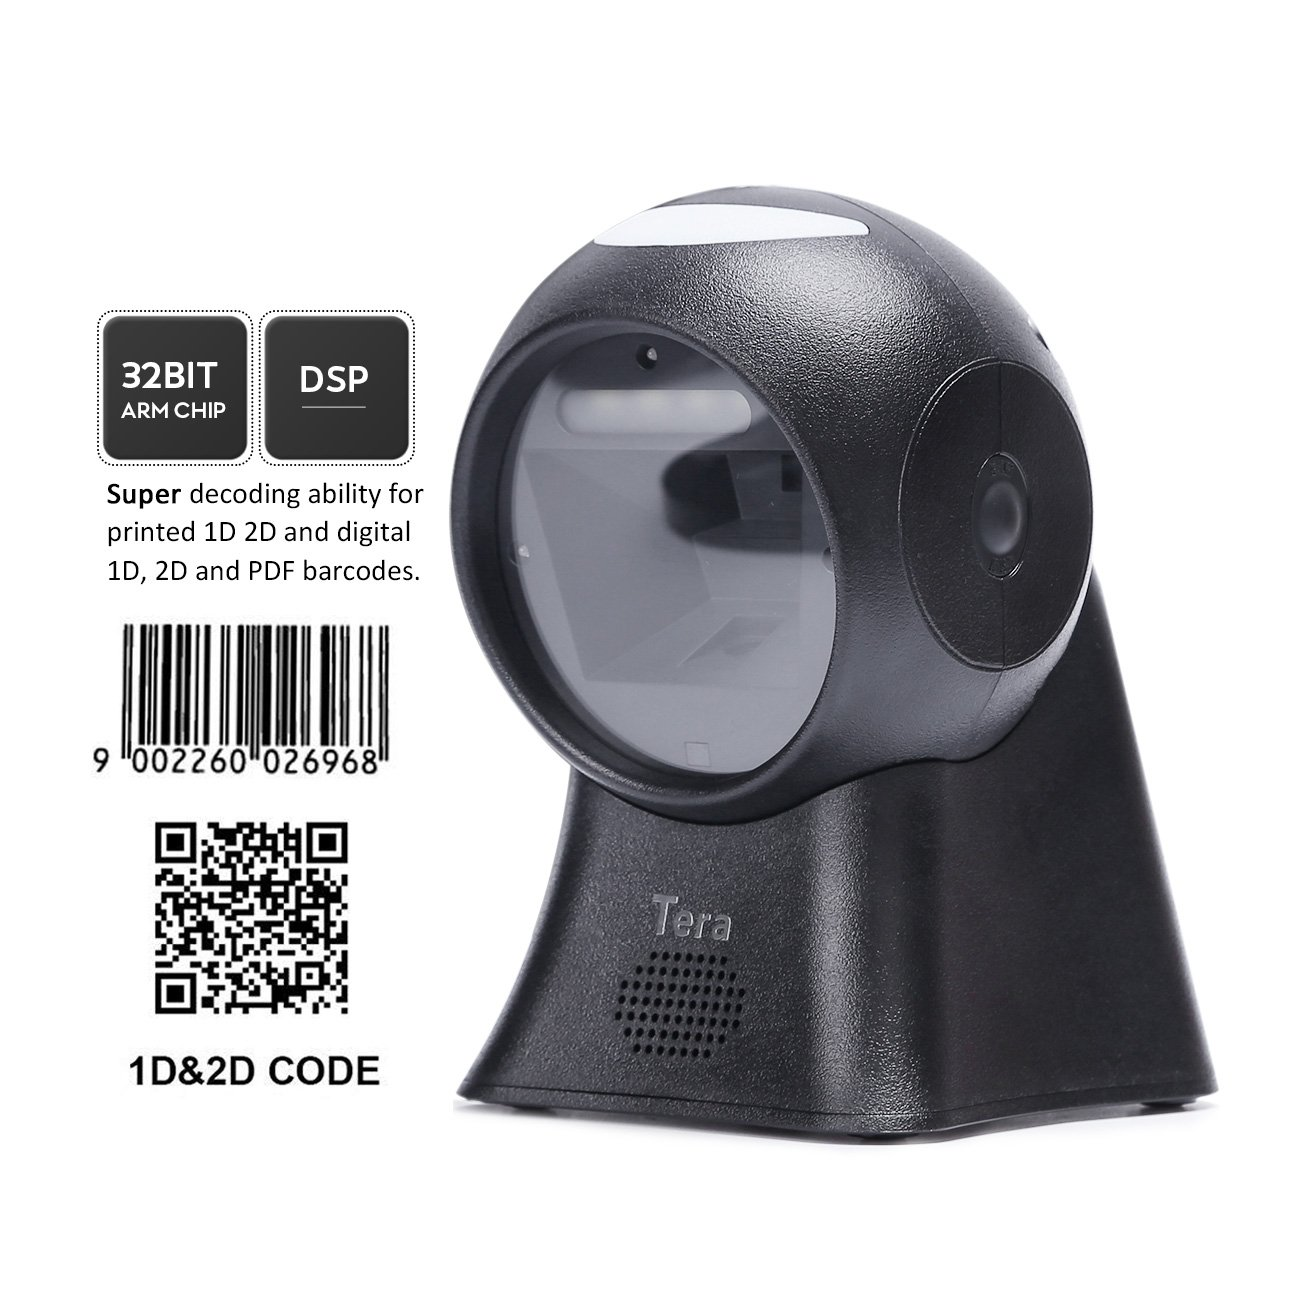 Tera Omnidirectional Barcode Scanner Presentation Scanner Barcode 1D 2D QR Digital Bar Codes Merchandise Codes Barcode Scanner Superior Scanning Performance Adjustable Scan Head Multi Interface